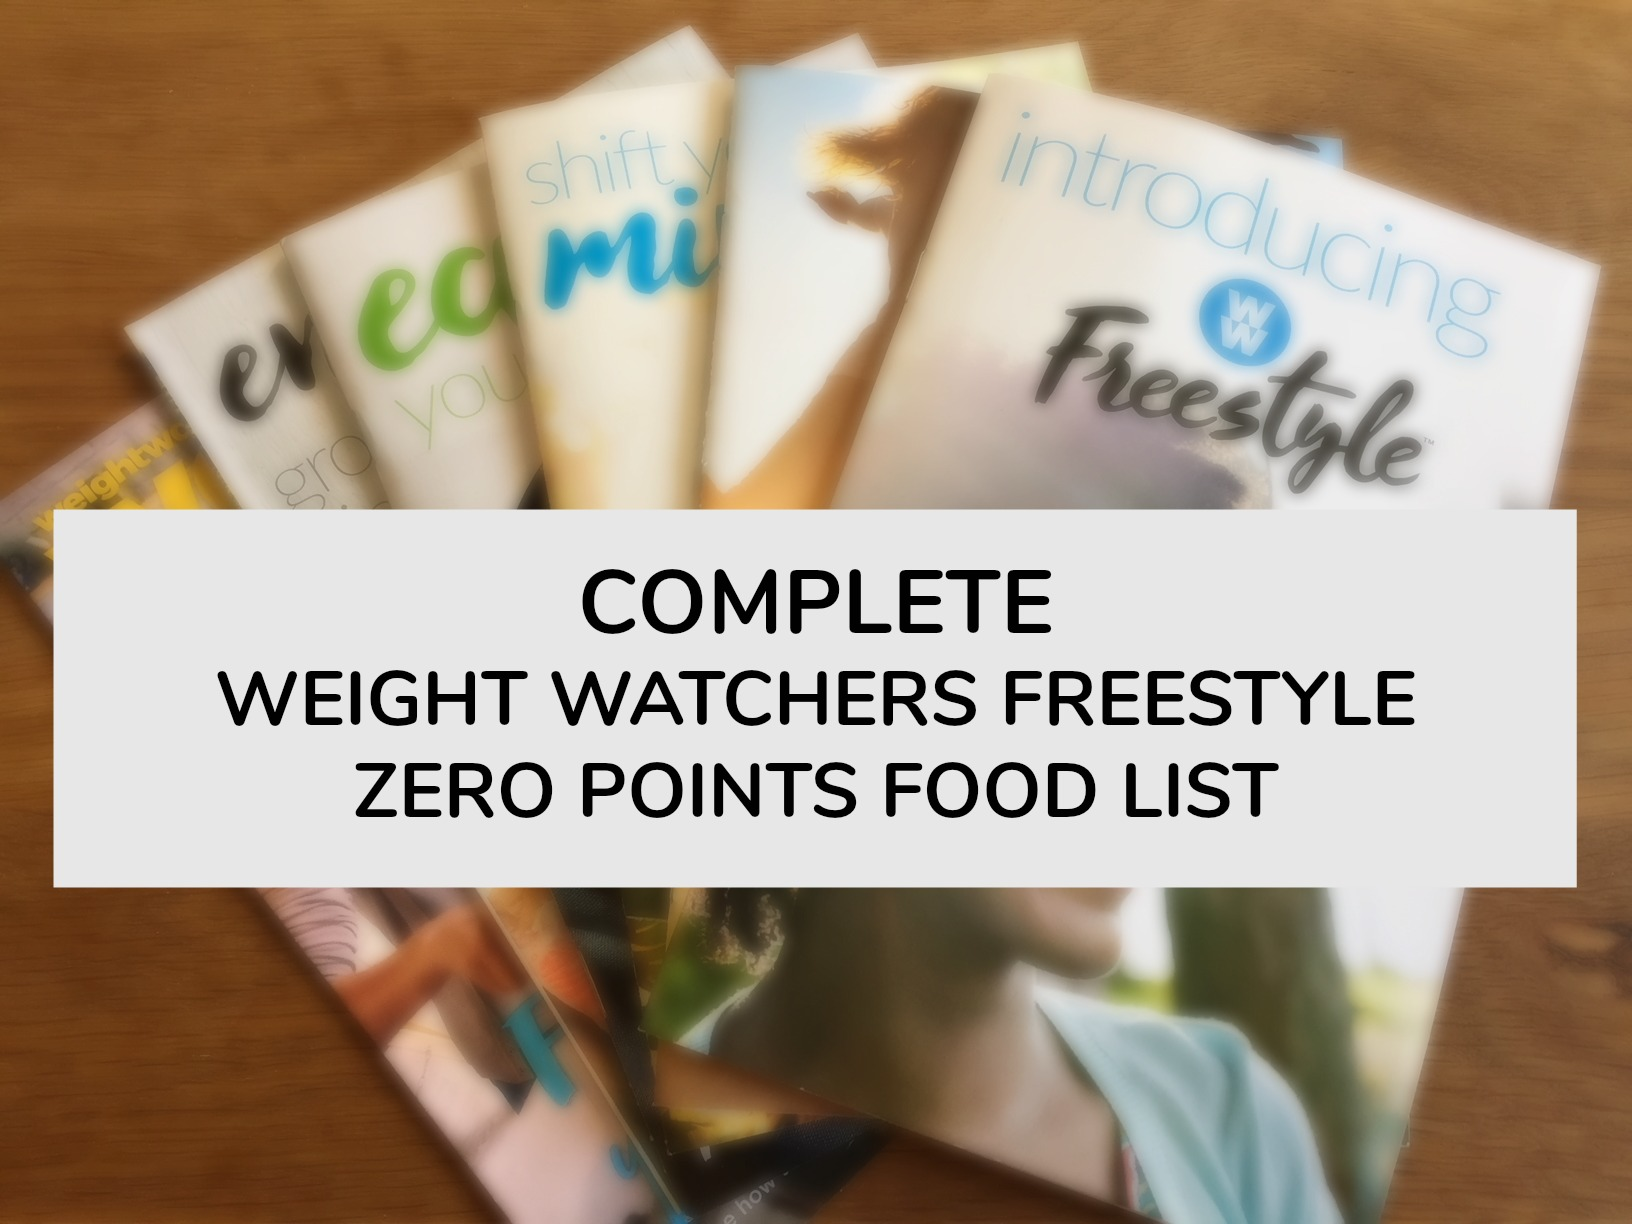 Complete Weight Watchers Freestyle Zero Points Food List Balancing Today